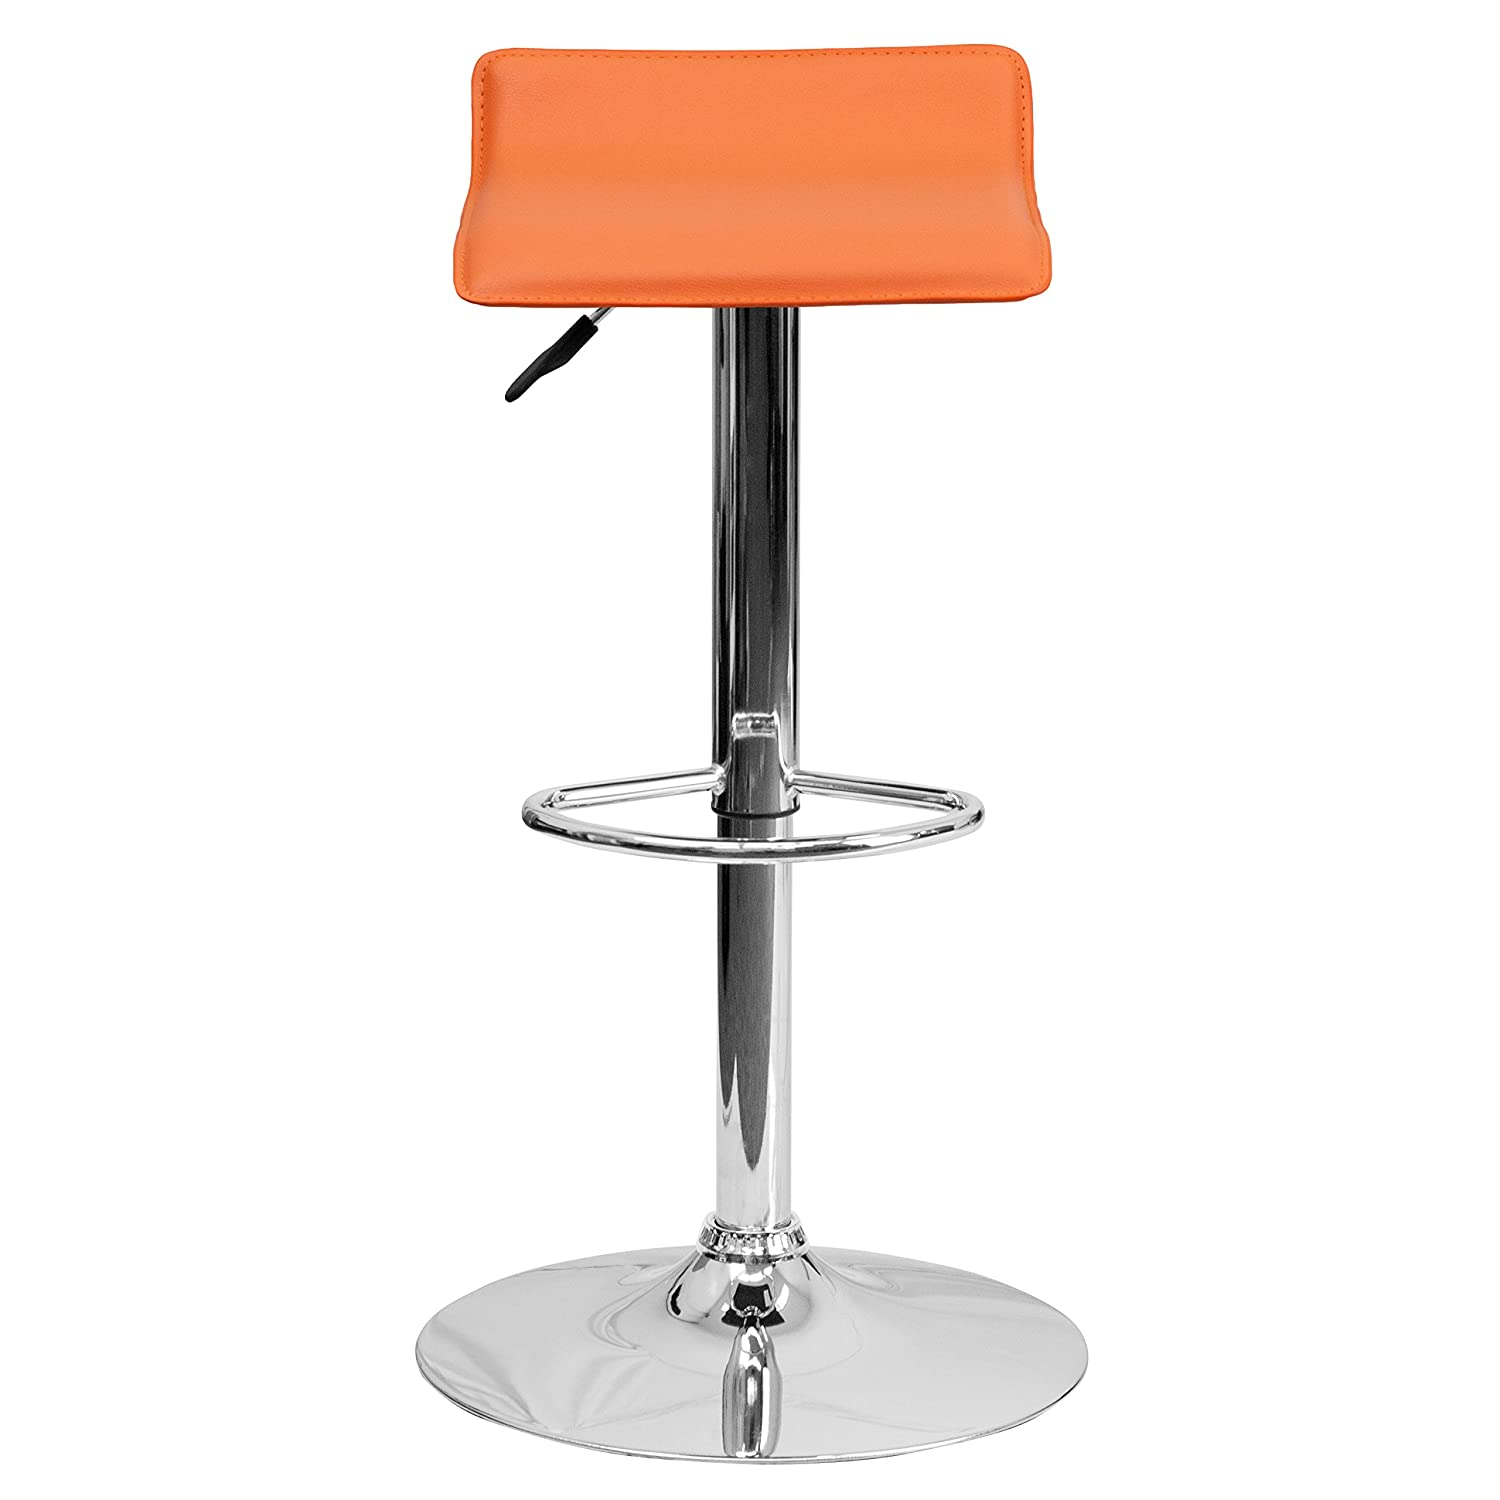 amazoncom flash furniture contemporary orange vinyl adjustable  - amazoncom flash furniture contemporary orange vinyl adjustable heightbarstool with chrome base kitchen  dining